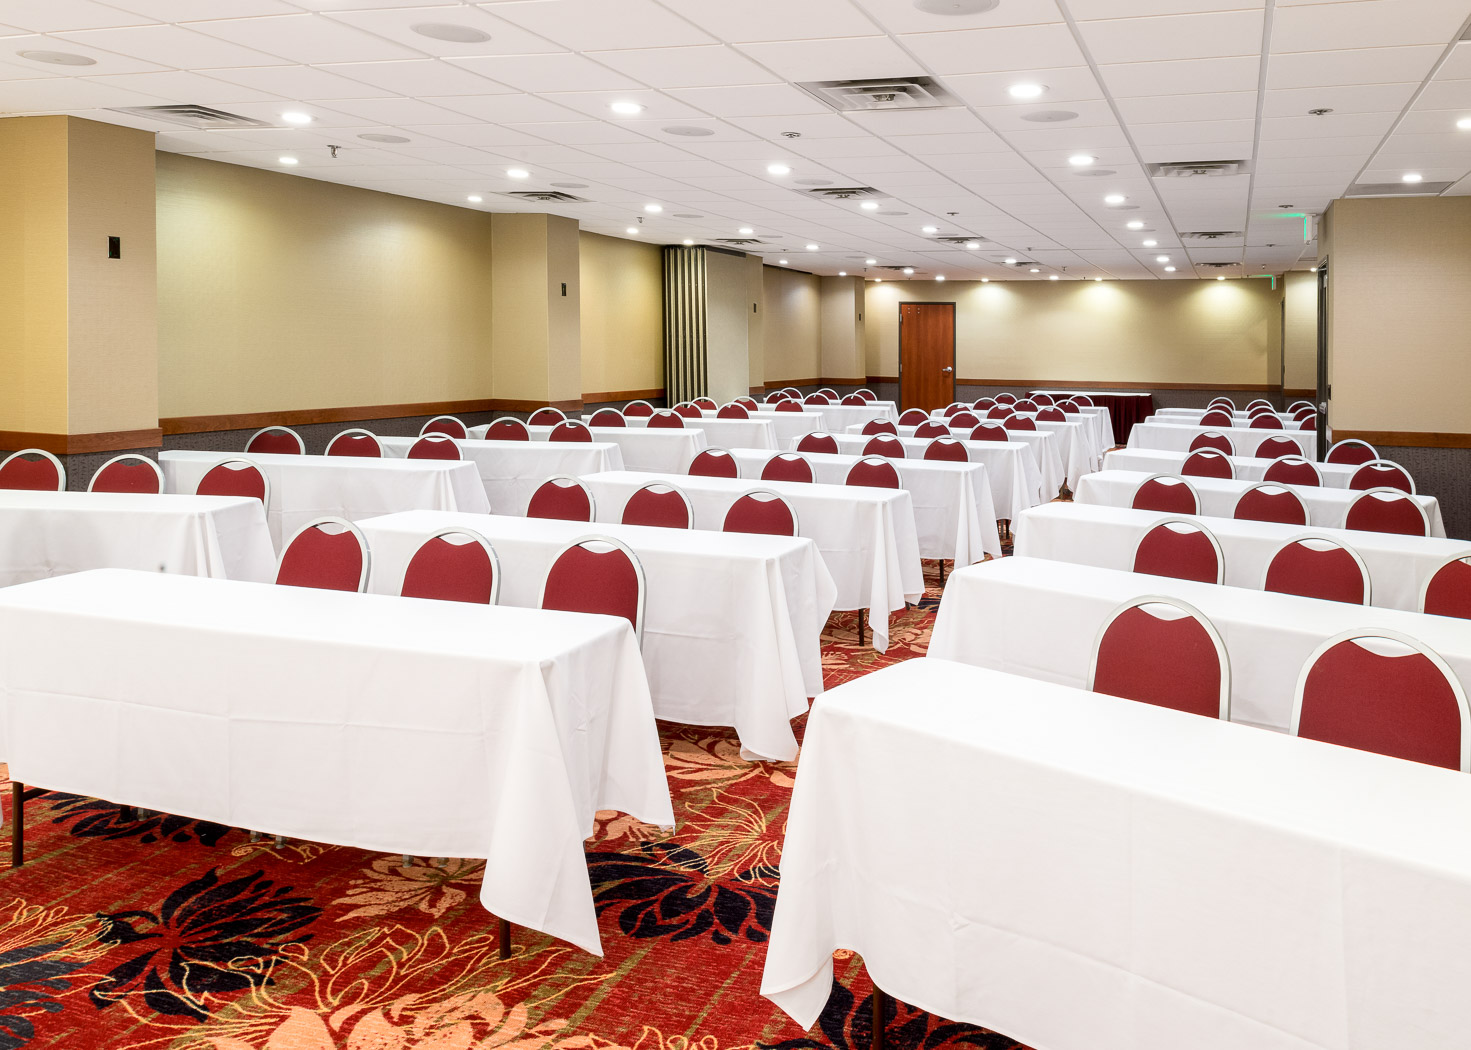 Meeting Room with tables set up with white table cloths and red chairs